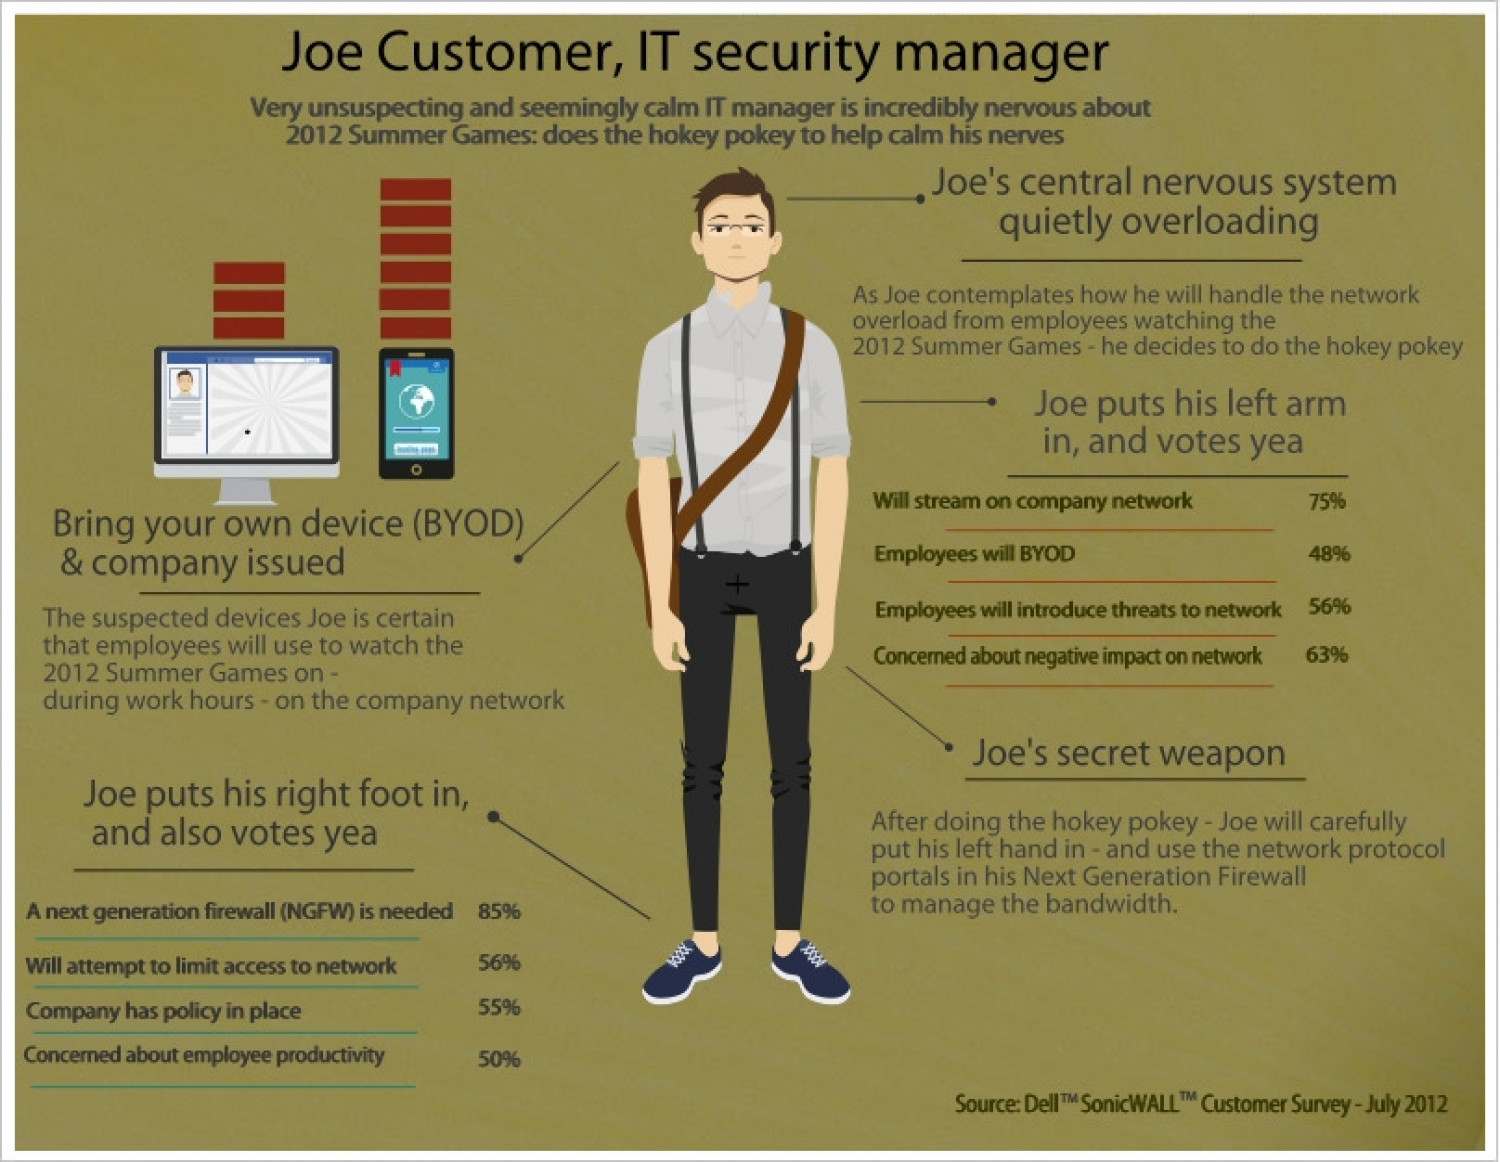 Joe Customer, IT security manager Infographic